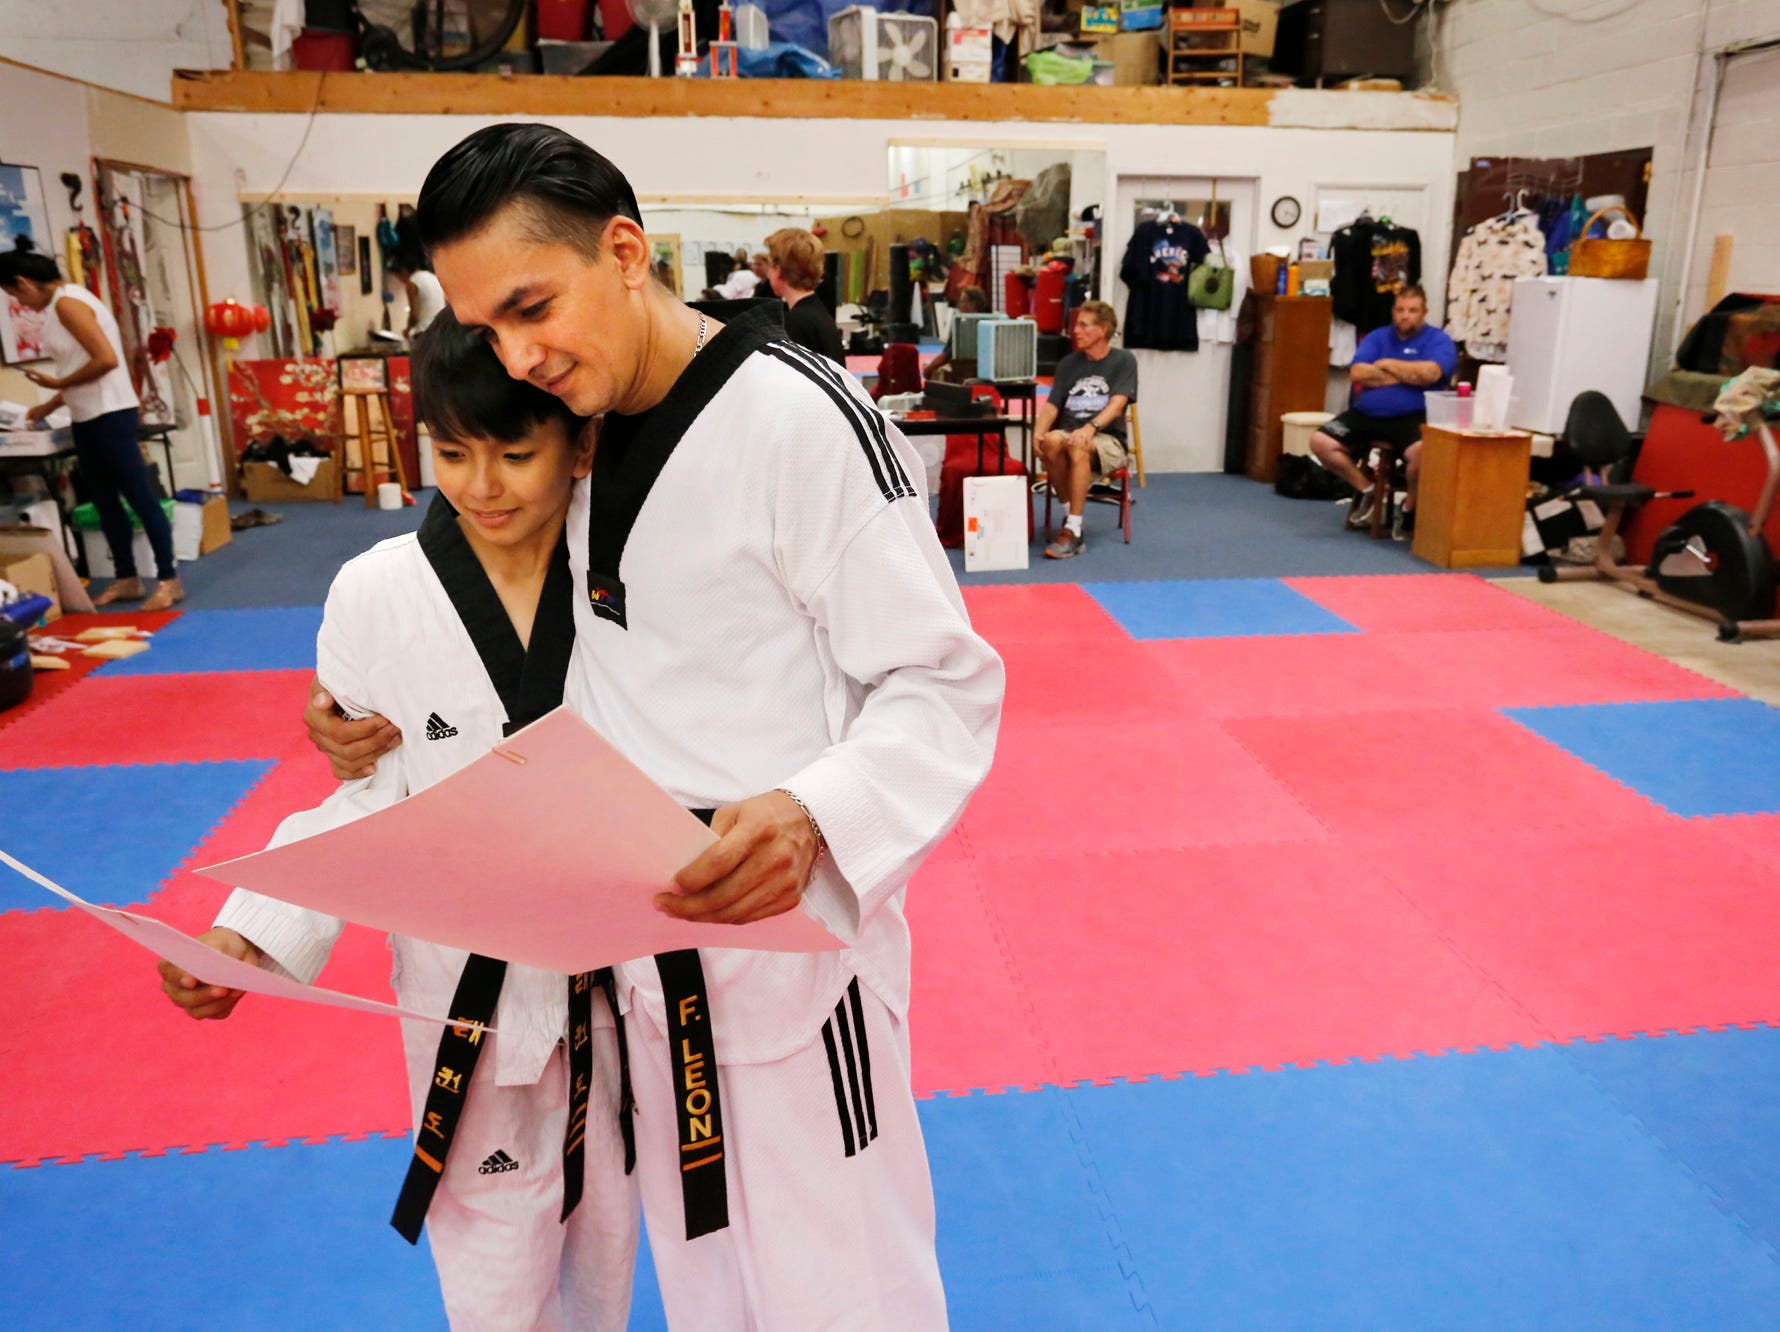 Felipe Leon embraces his son, Brandon, after they were both awarded their Dan certificates after passing the respective tests in Taekwondo at American House of Martial Arts Tuesday, August 28, 2018, inside Trader Buck's Flea Market, 2330 Sagamore Parkway South in Lafayette. Felipe Leon, 37, received is third Dan, or third degree black belt, in Taekwondao. Brandon received his one Dan, or first degreee black belt.